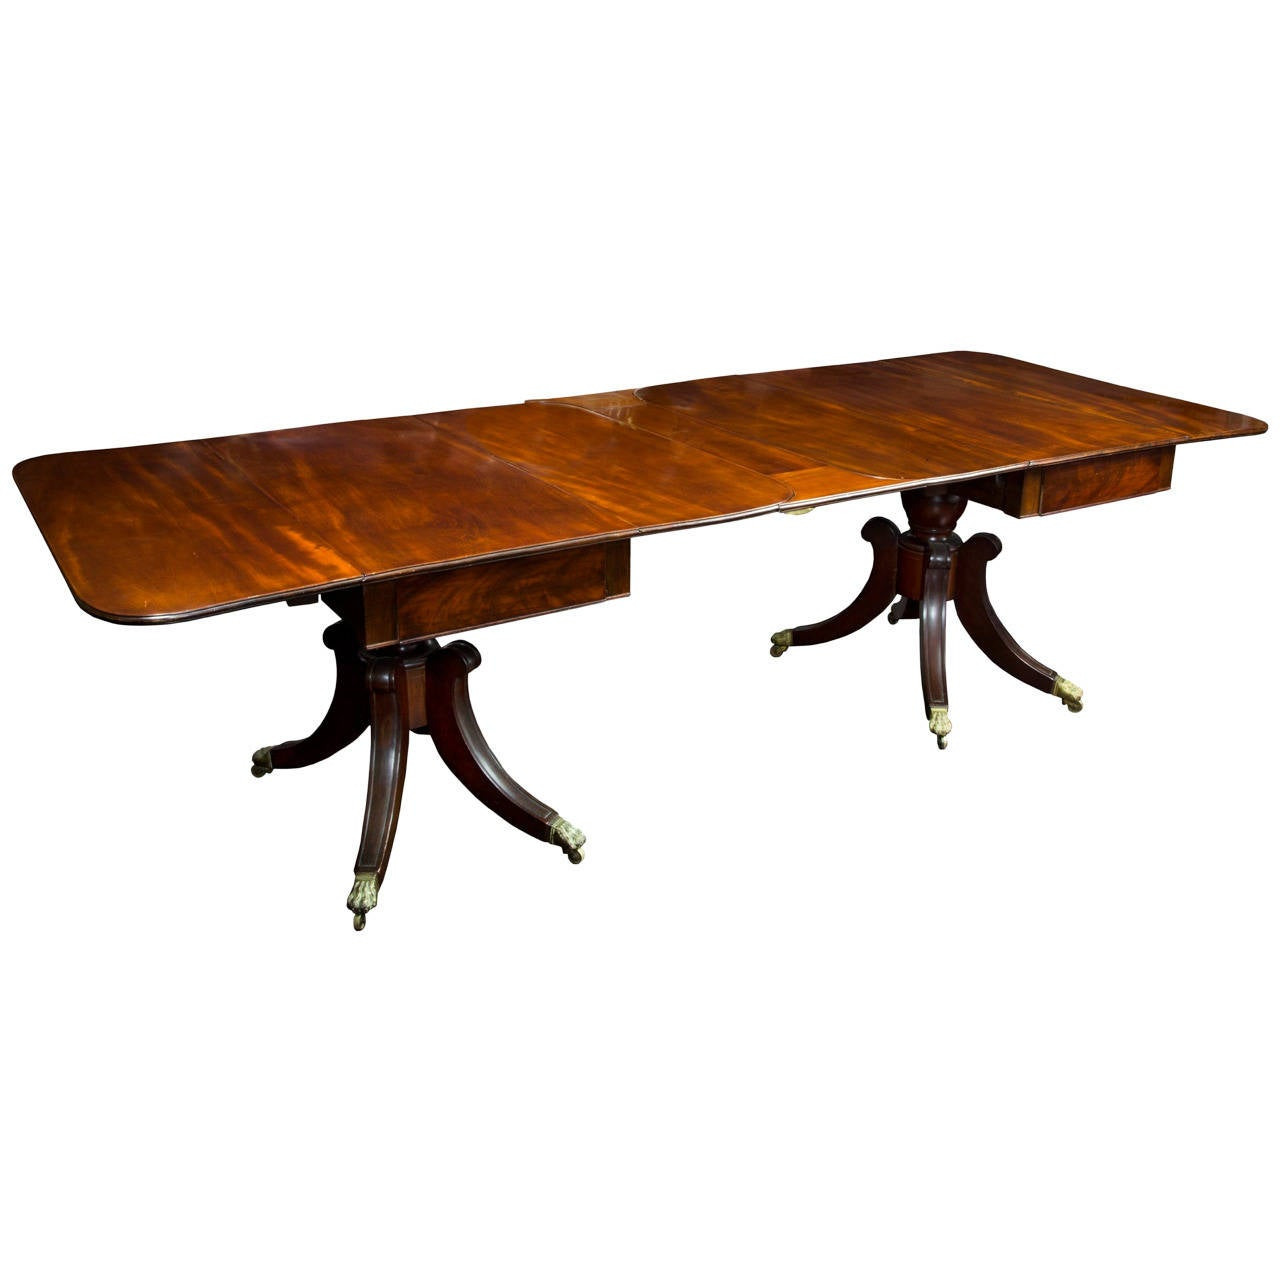 Fine Classical Mahogany Pedestal Dining Room Table Boston Circa 1820 For Sale At 1stdibs